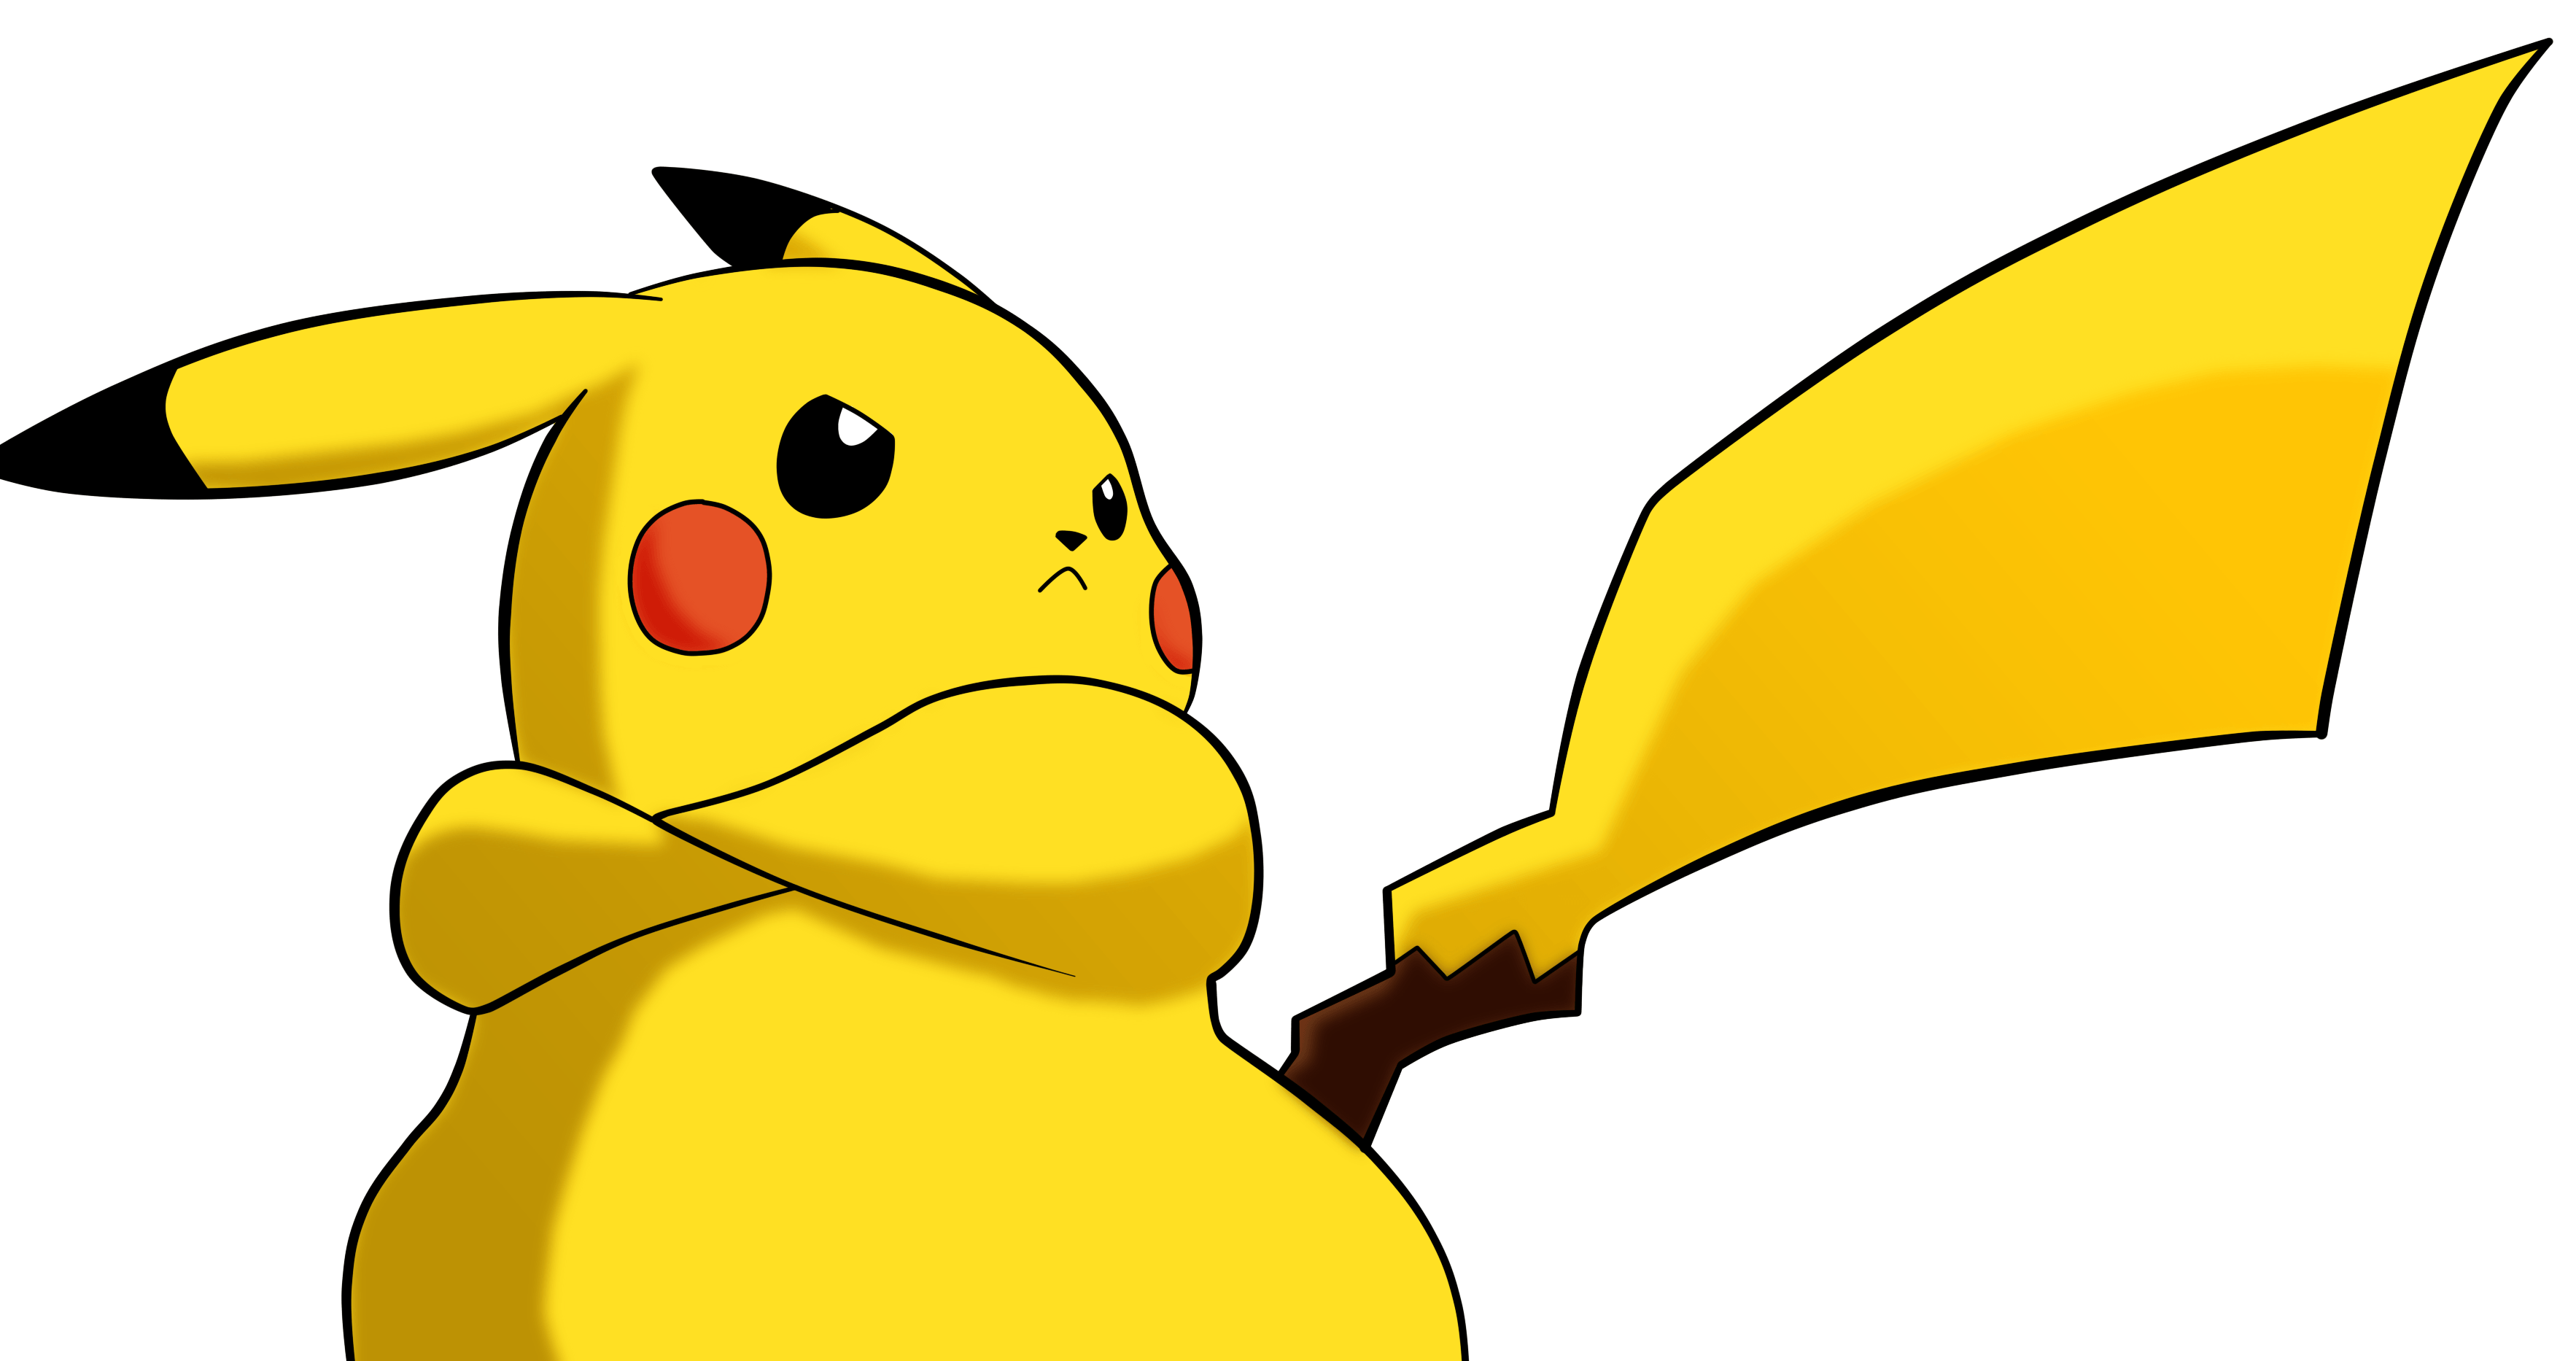 Angry Pikachu Wallpapers Top Free Angry Pikachu Backgrounds